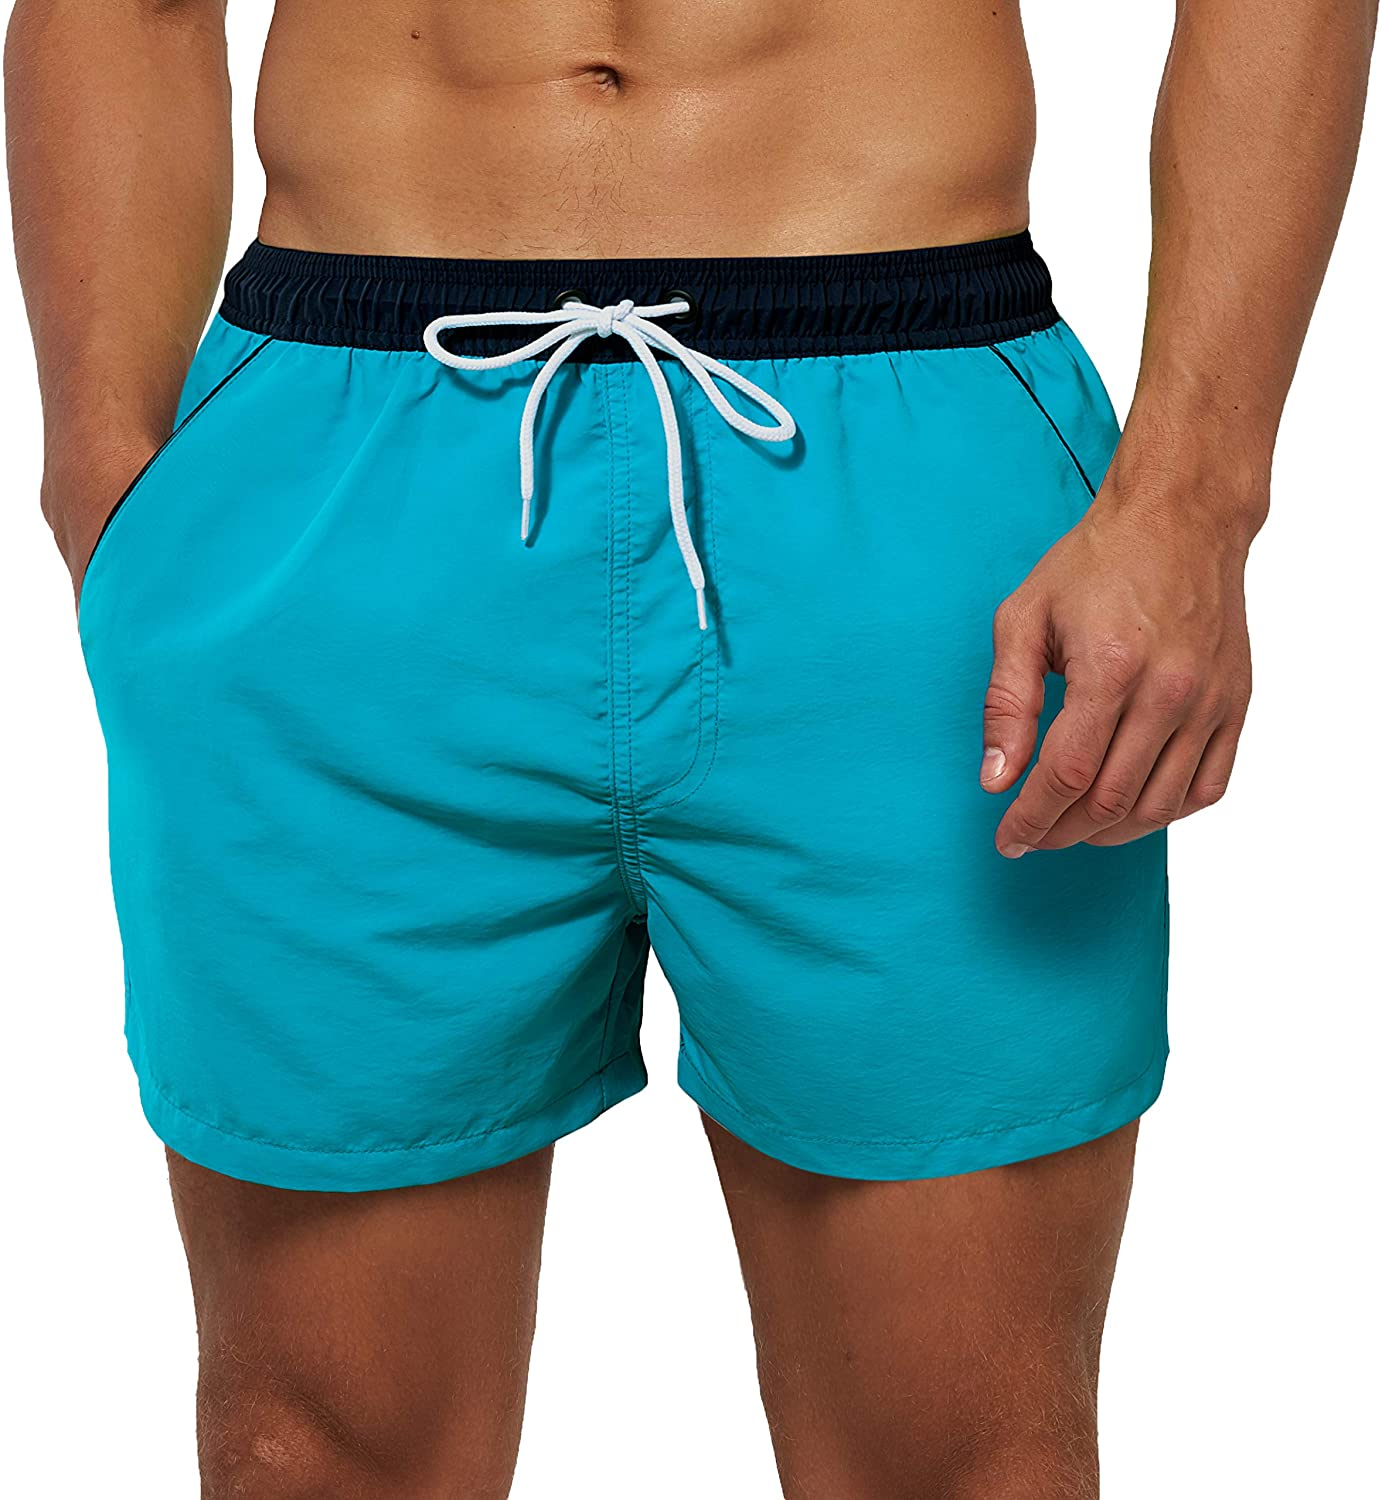 SILKWORLD Men's Quick Dry Swim Swimsuit Shor Sports Solid Max 82% OFF Trunks excellence